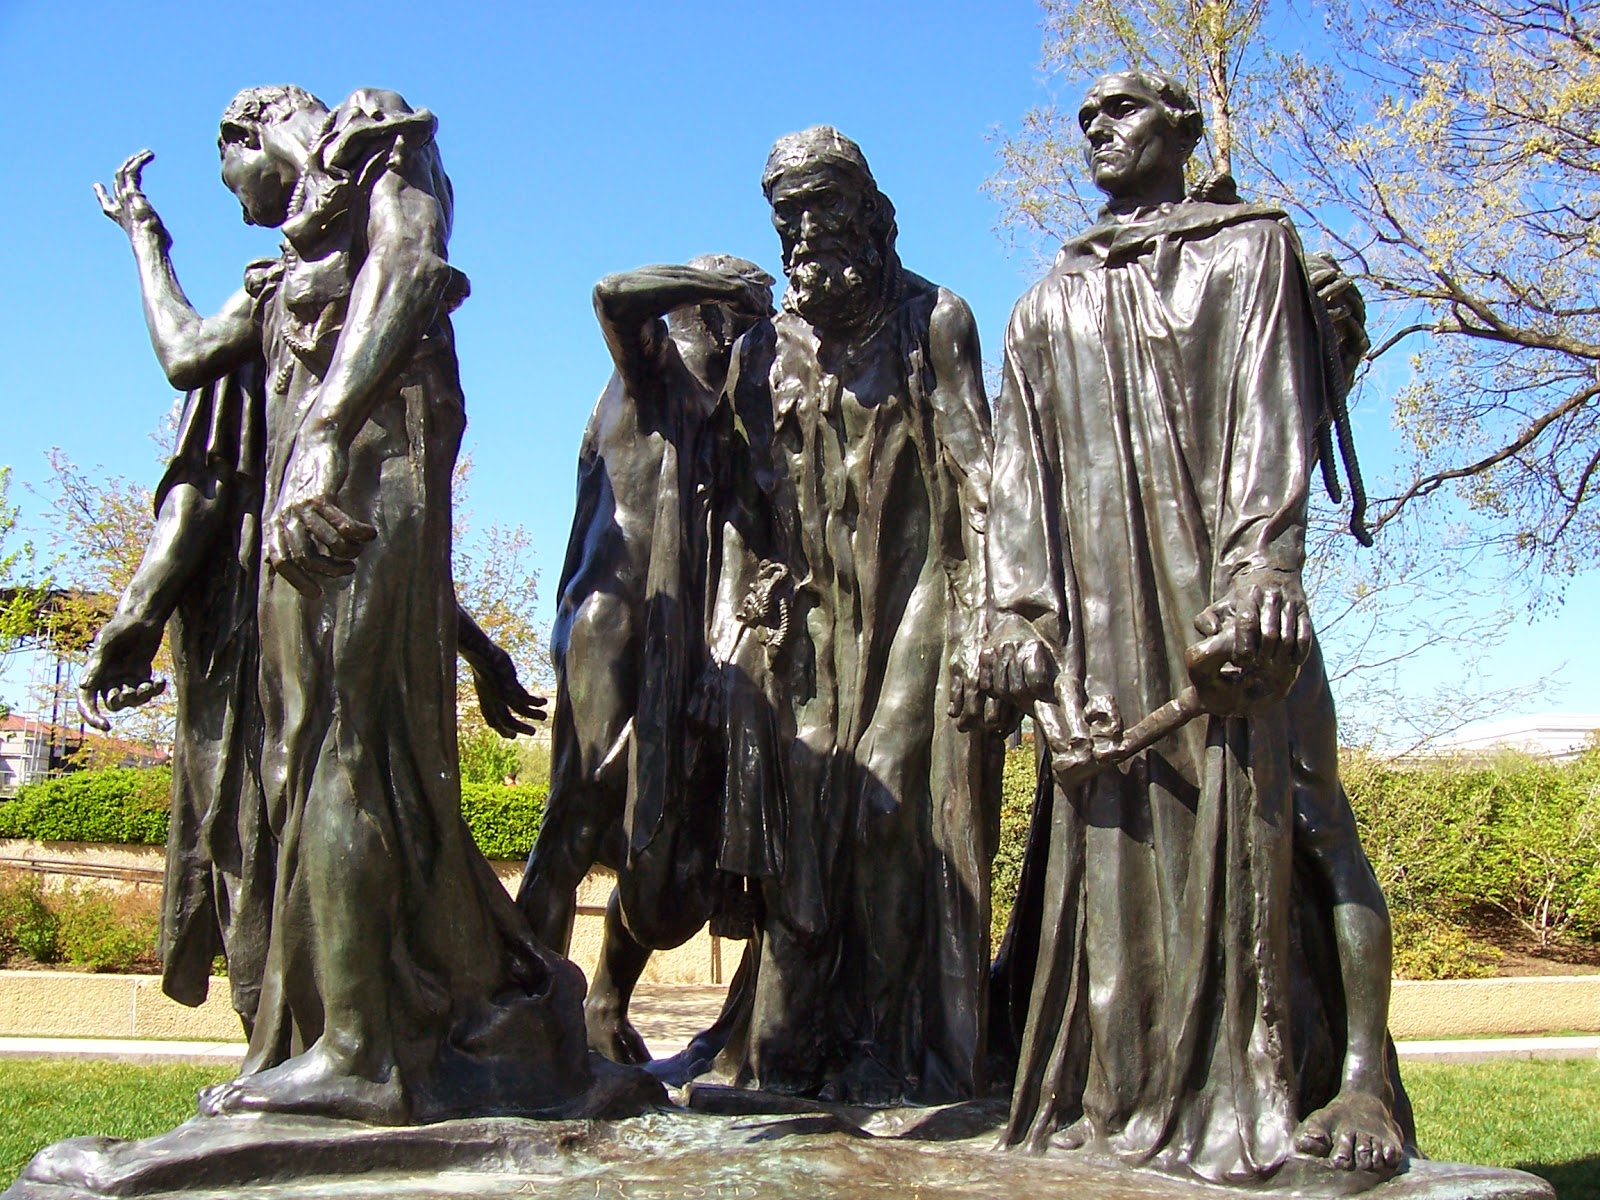 http://upload.wikimedia.org/wikipedia/en/2/28/Burghers_of_Calais_Hirshhorn.jpg